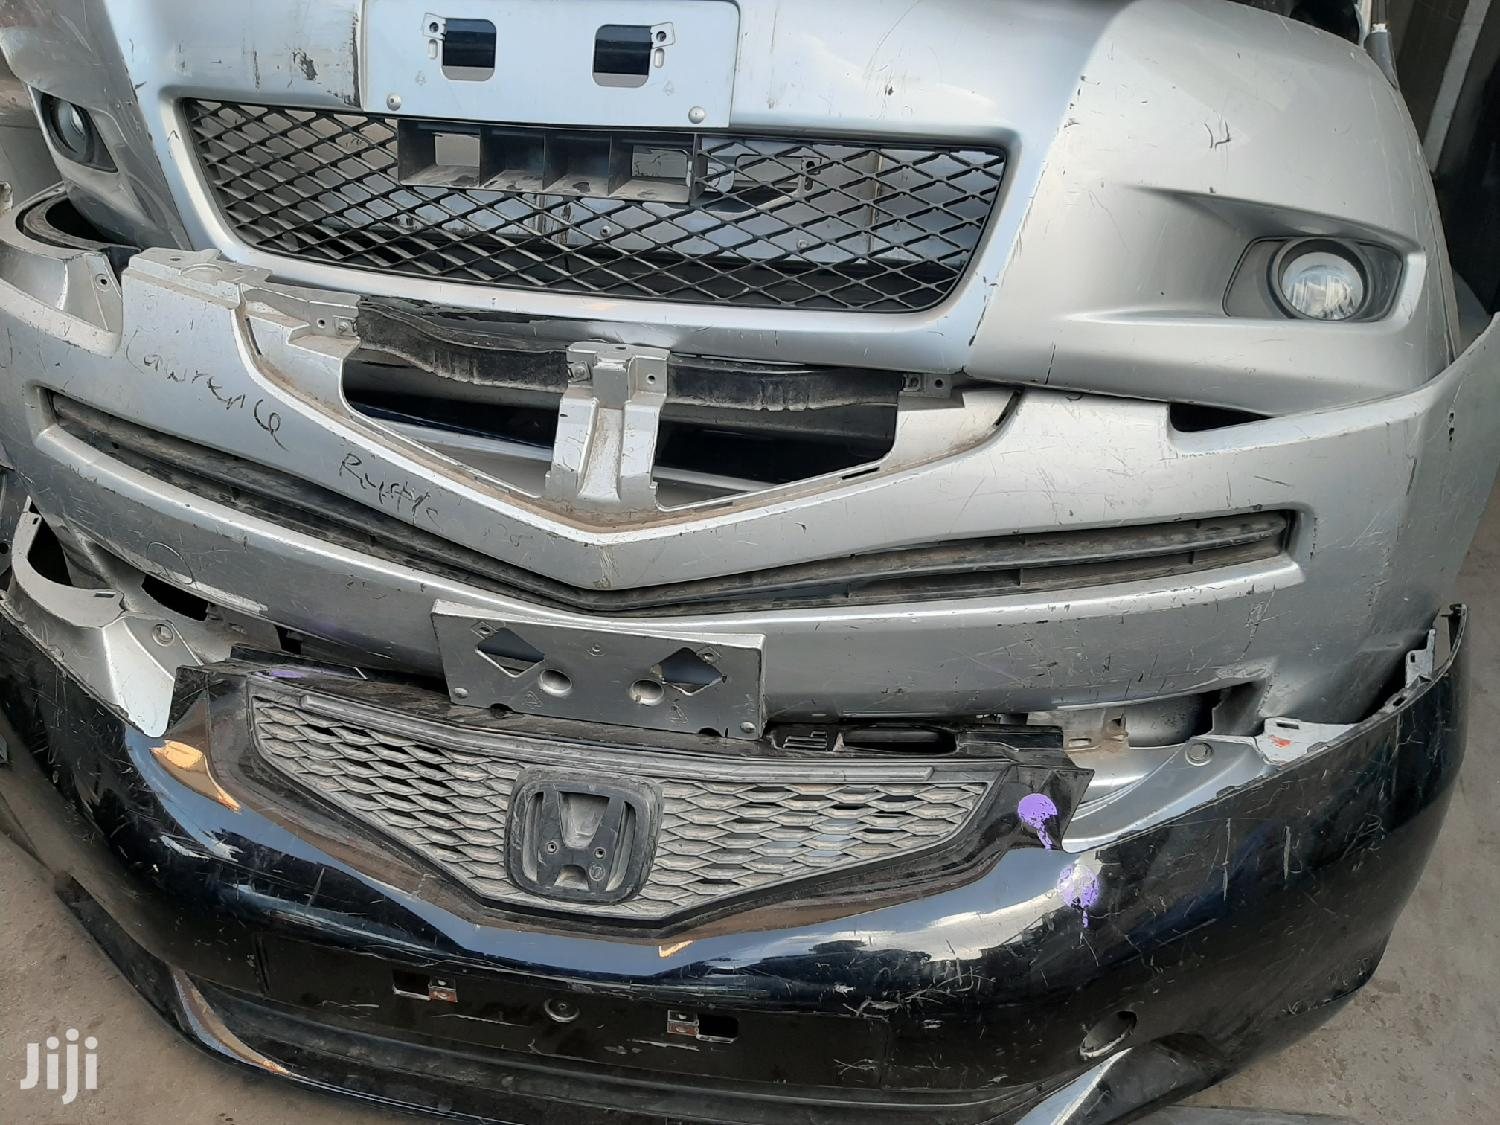 Dent Free Toyota Ractis 2008 Front Bumper Auto Car Spare Body Parts | Vehicle Parts & Accessories for sale in Nairobi Central, Nairobi, Kenya